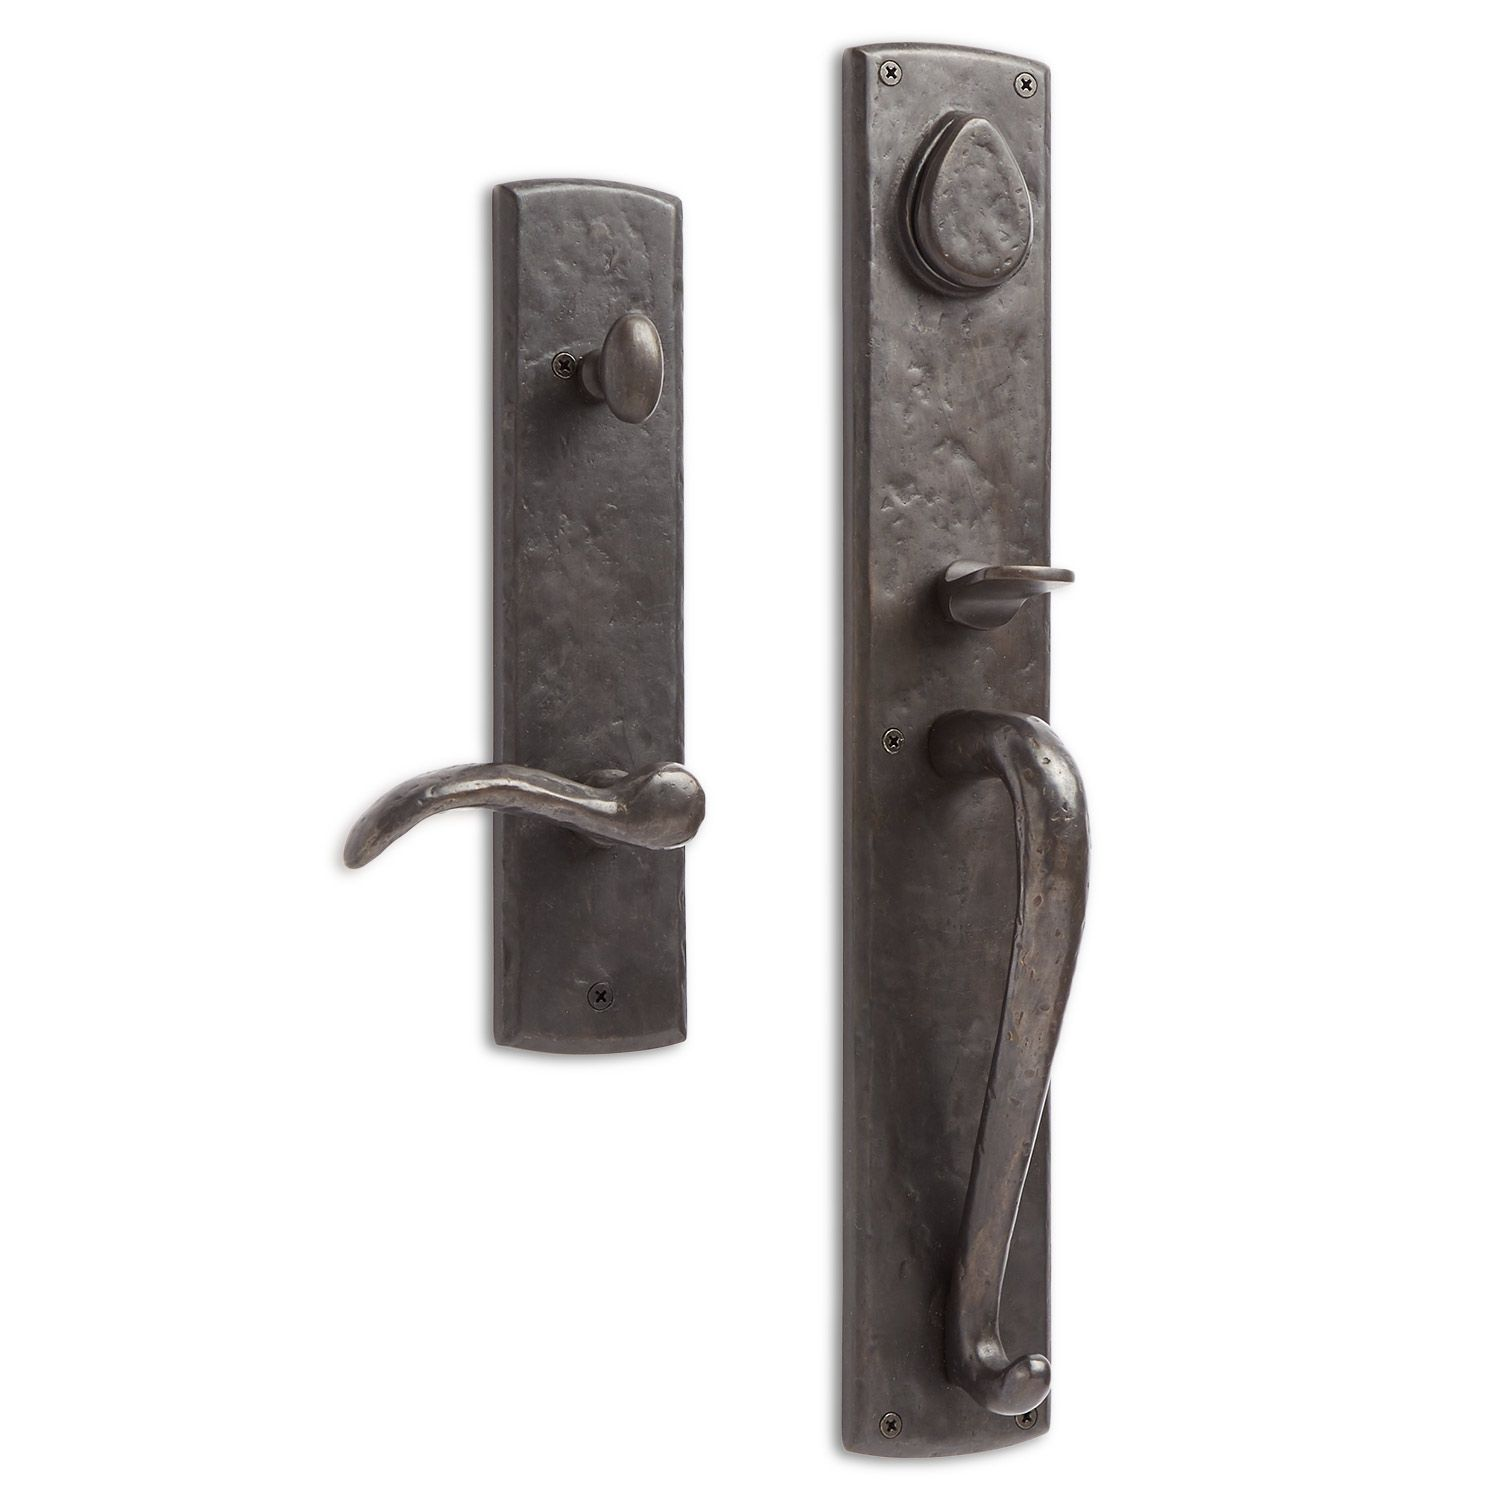 Bullock Solid Bronze Entrance Set with Lever Handle